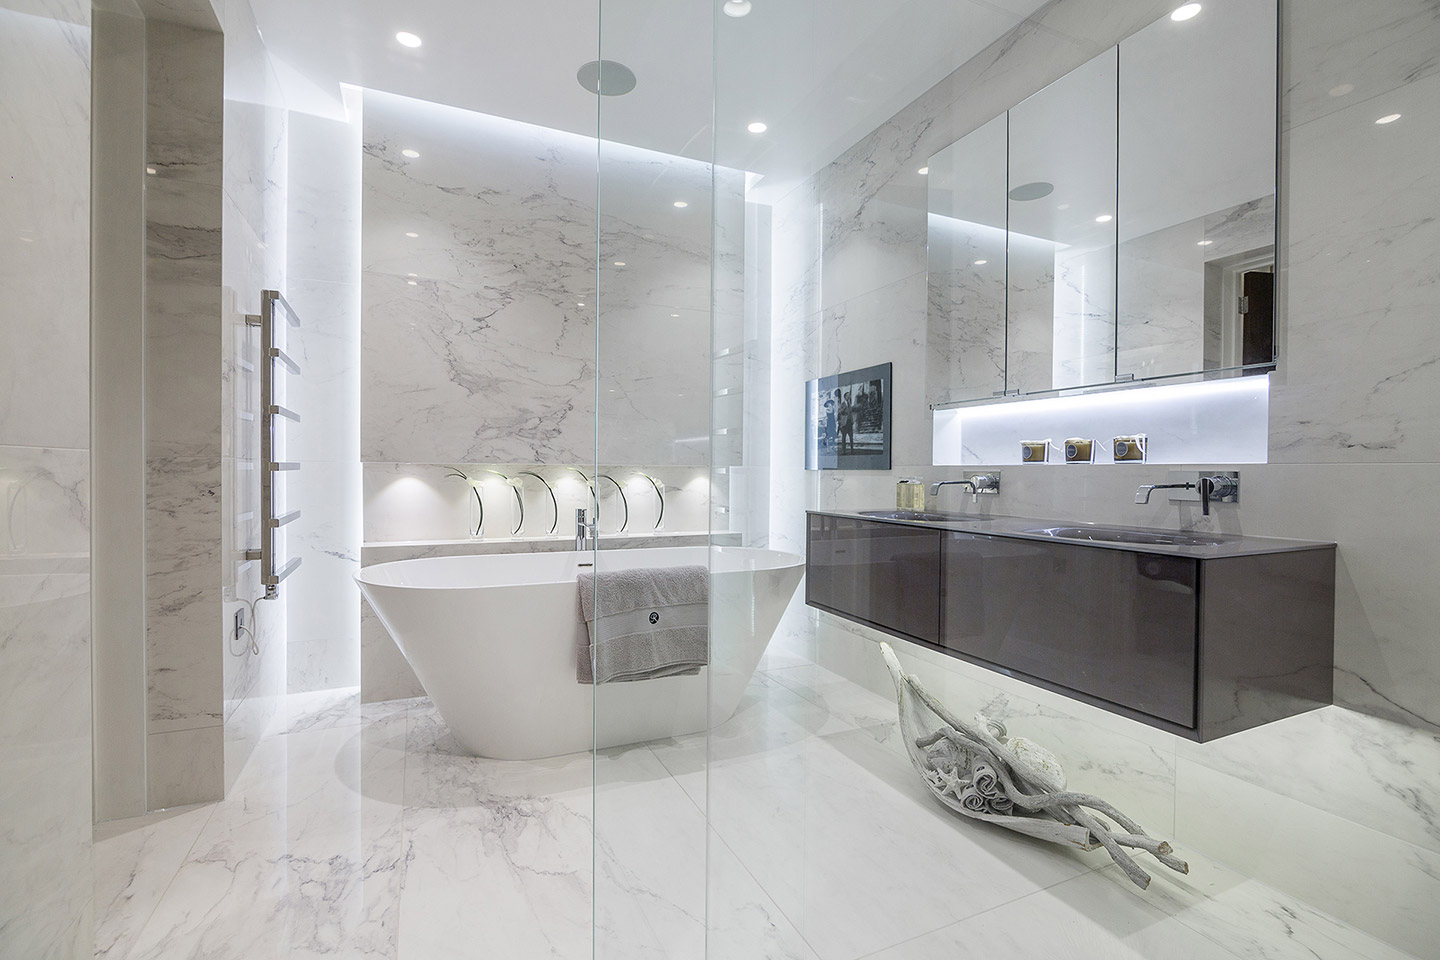 Fancy Bathrooms Luxury Bathrooms Hadley Wood London Tiles And Baths Direct